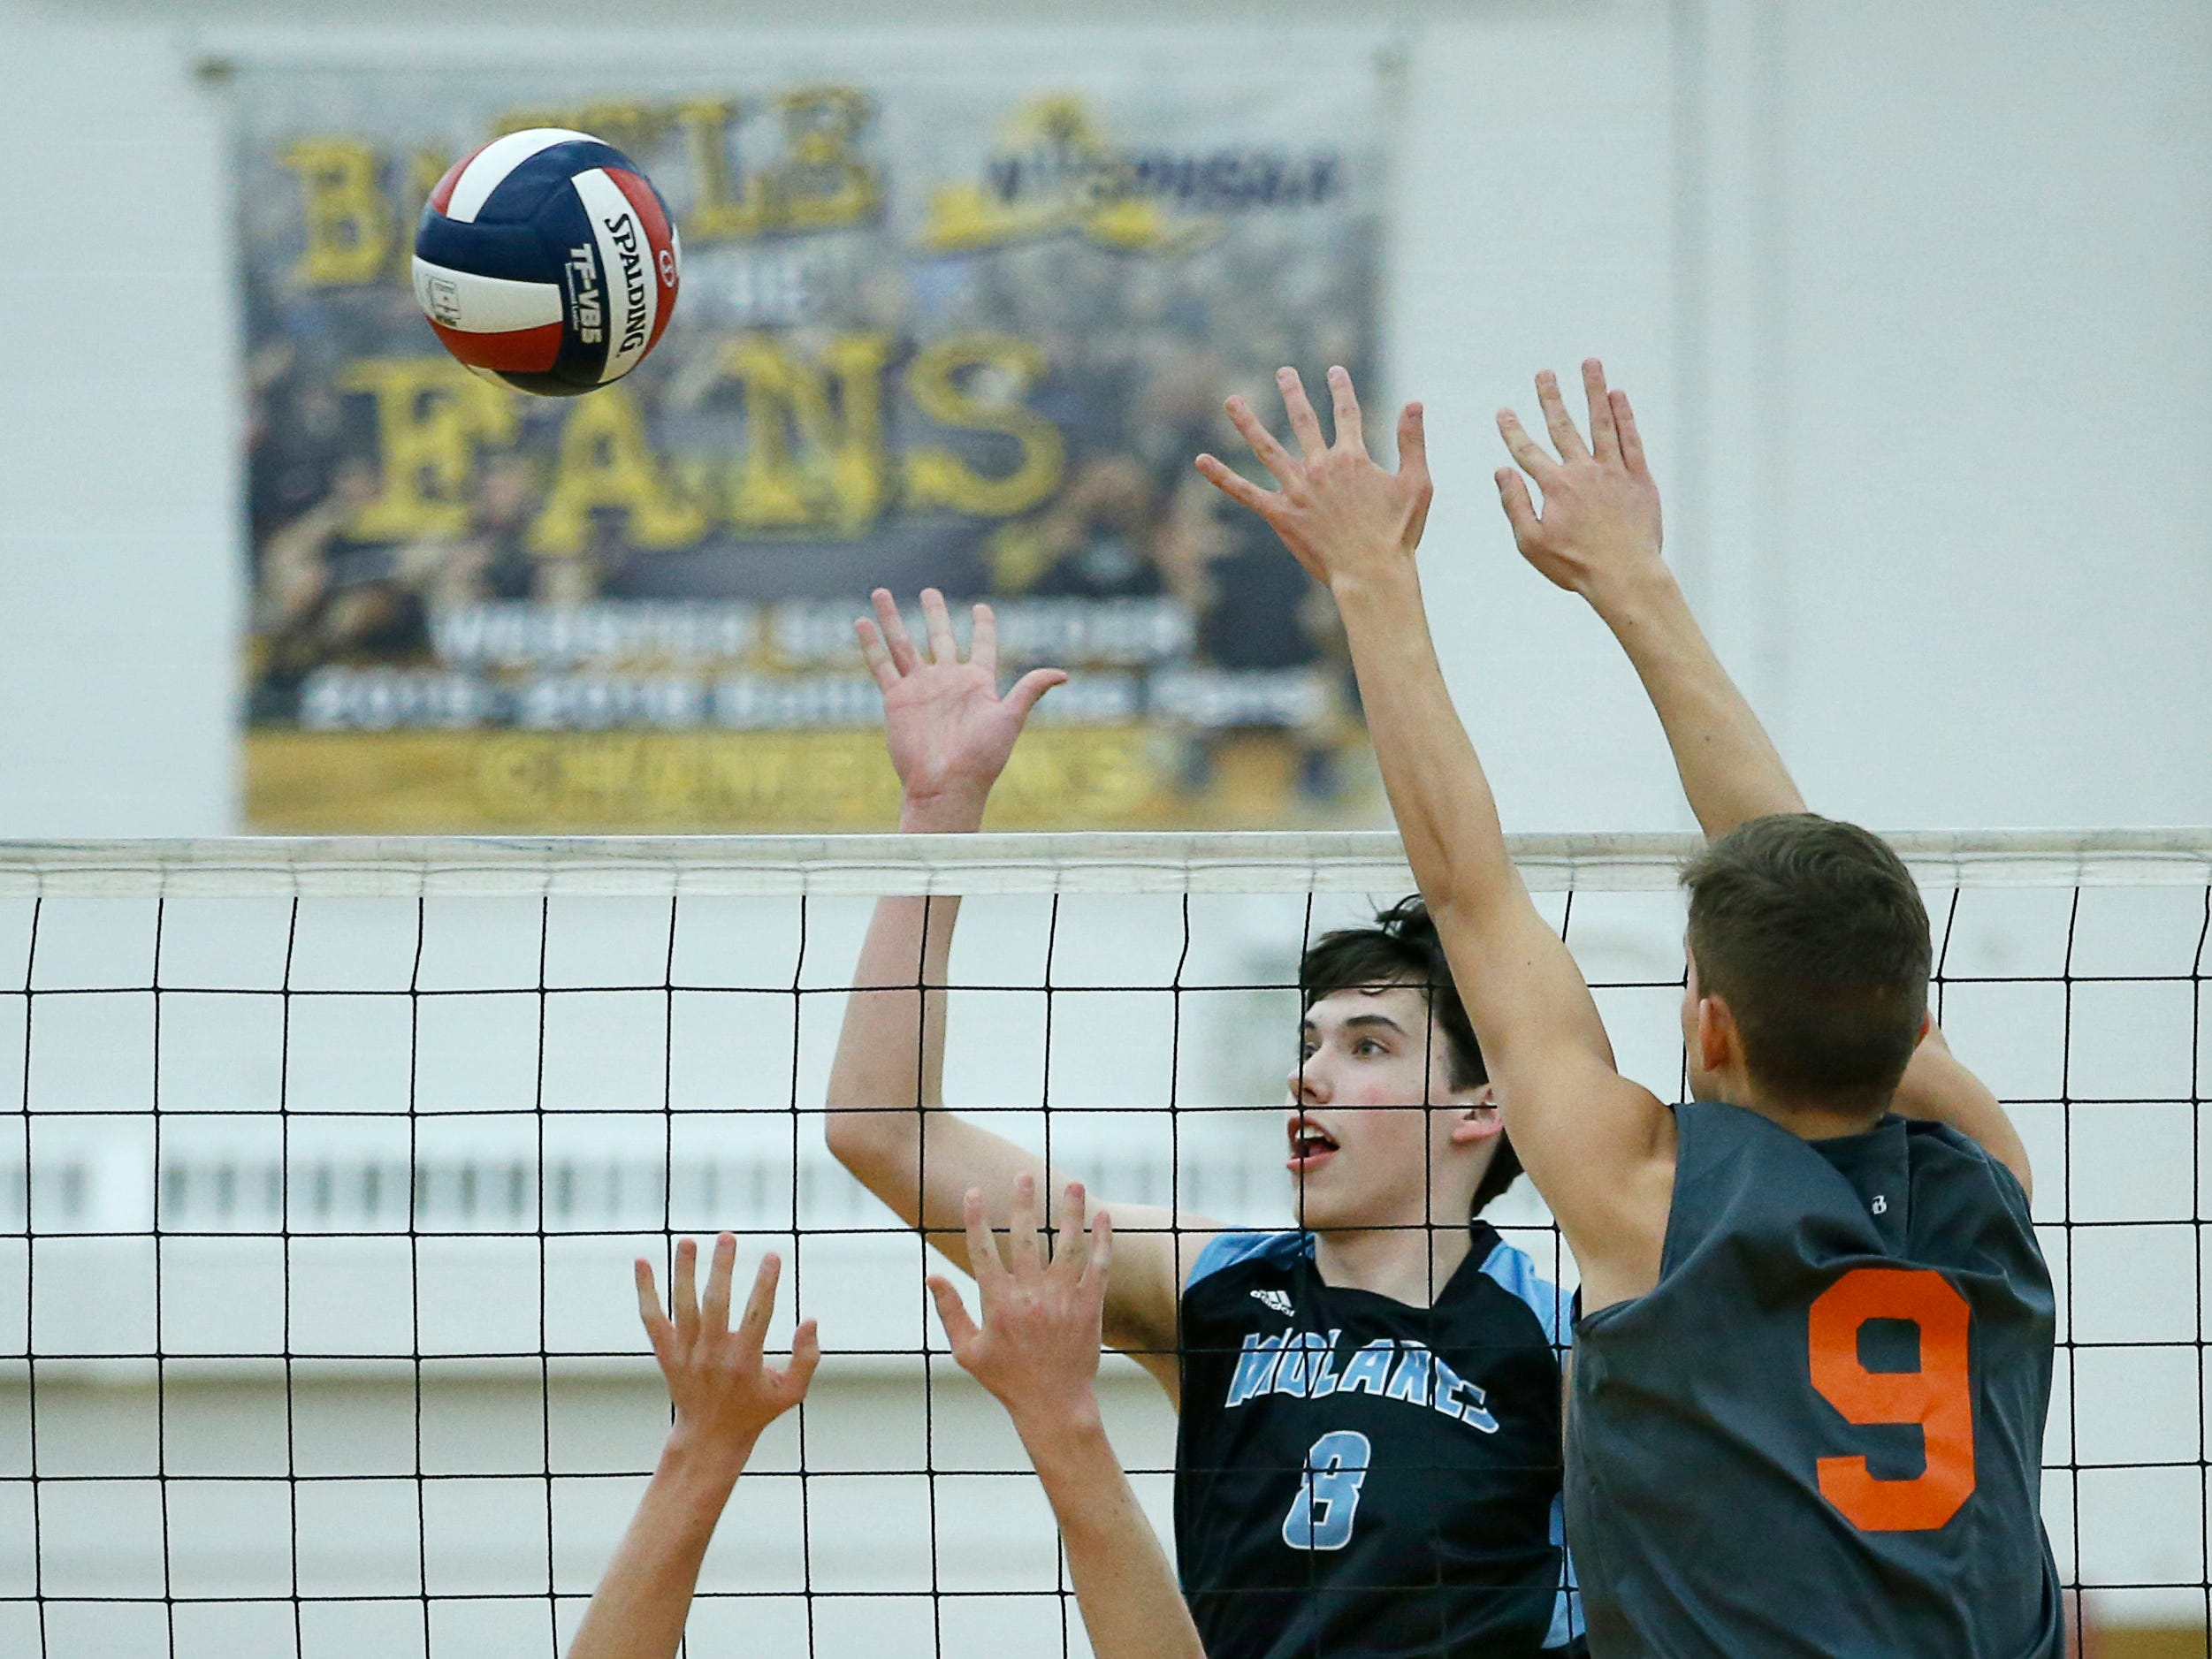 Class B volleyball final: Midlakes' Kyle McCann taps the ball over Churchville-Chili's John Keele and Greg Czolgosz in the first set at Webster Schroeder High School.